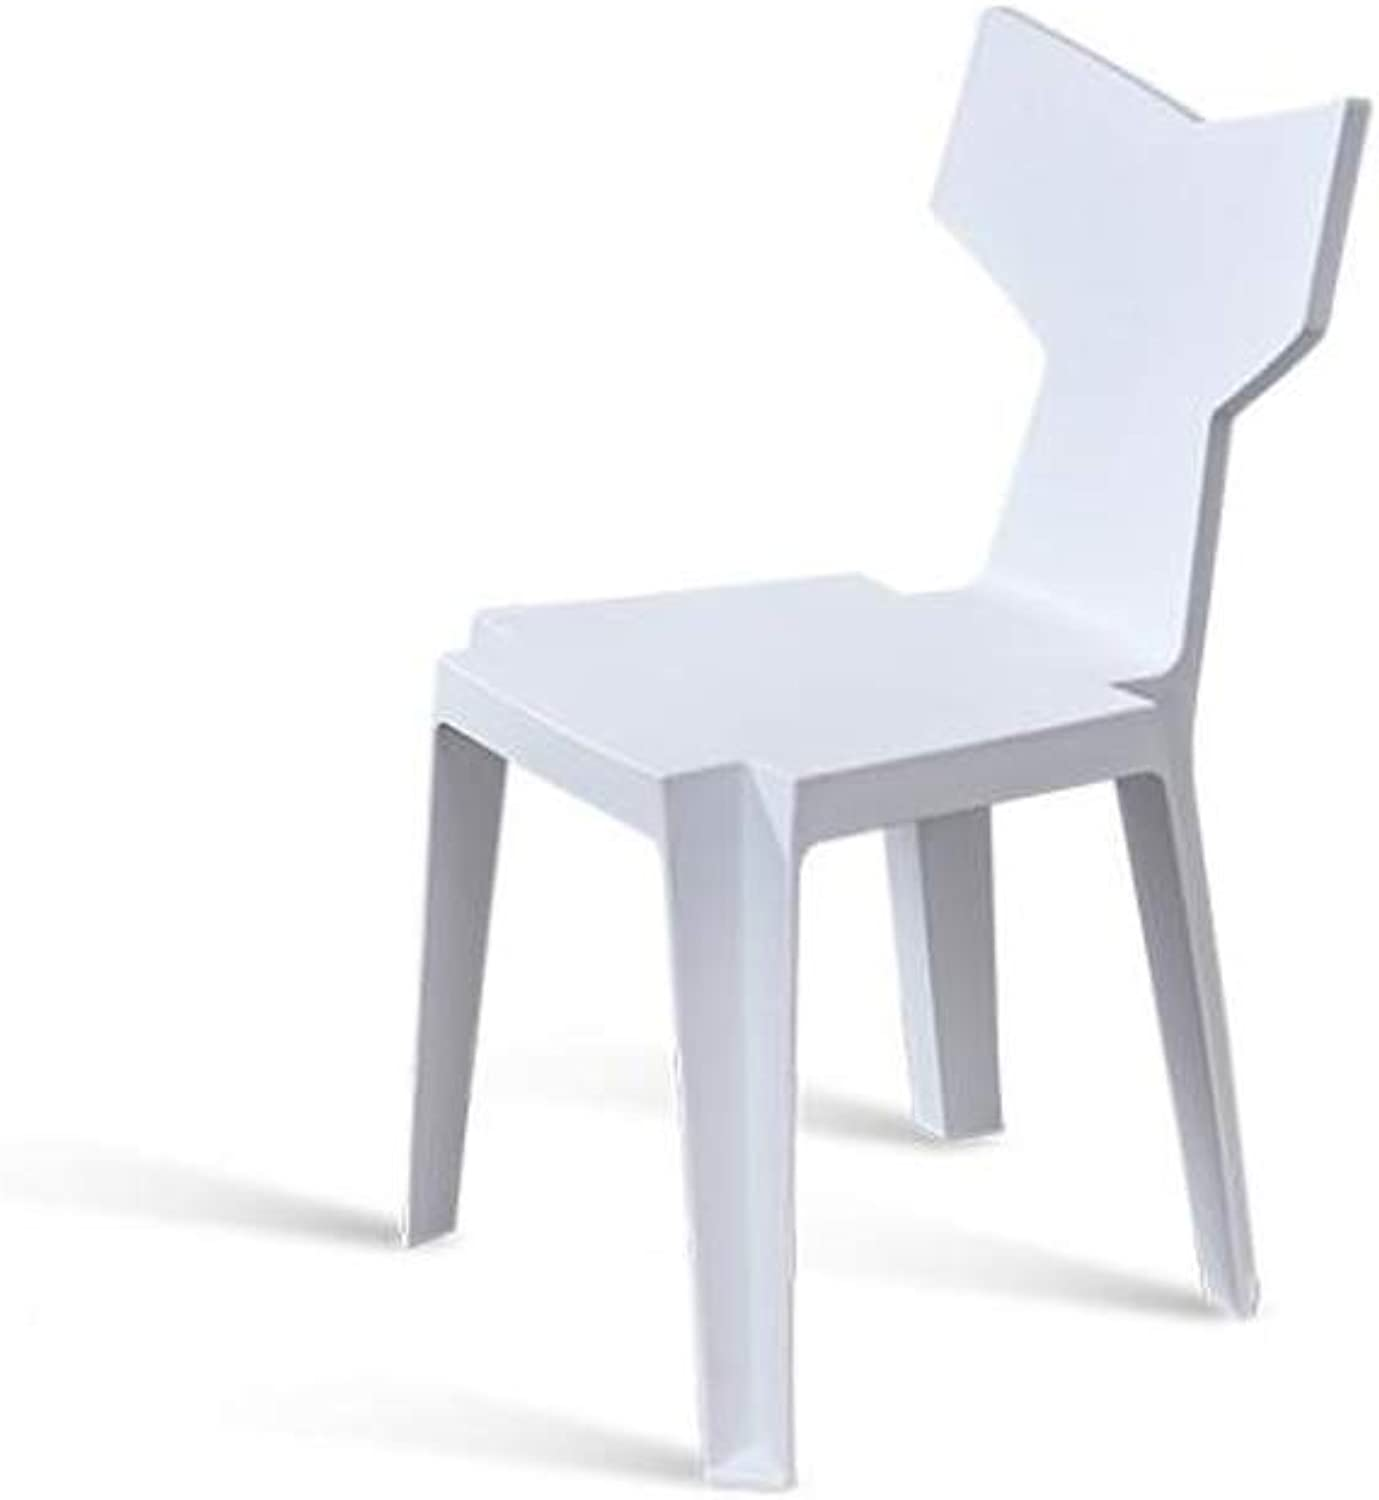 LRW Modern Minimalist Dining Chair, Backrest Stool Chair, Nordic Creative Leisure Chair, White